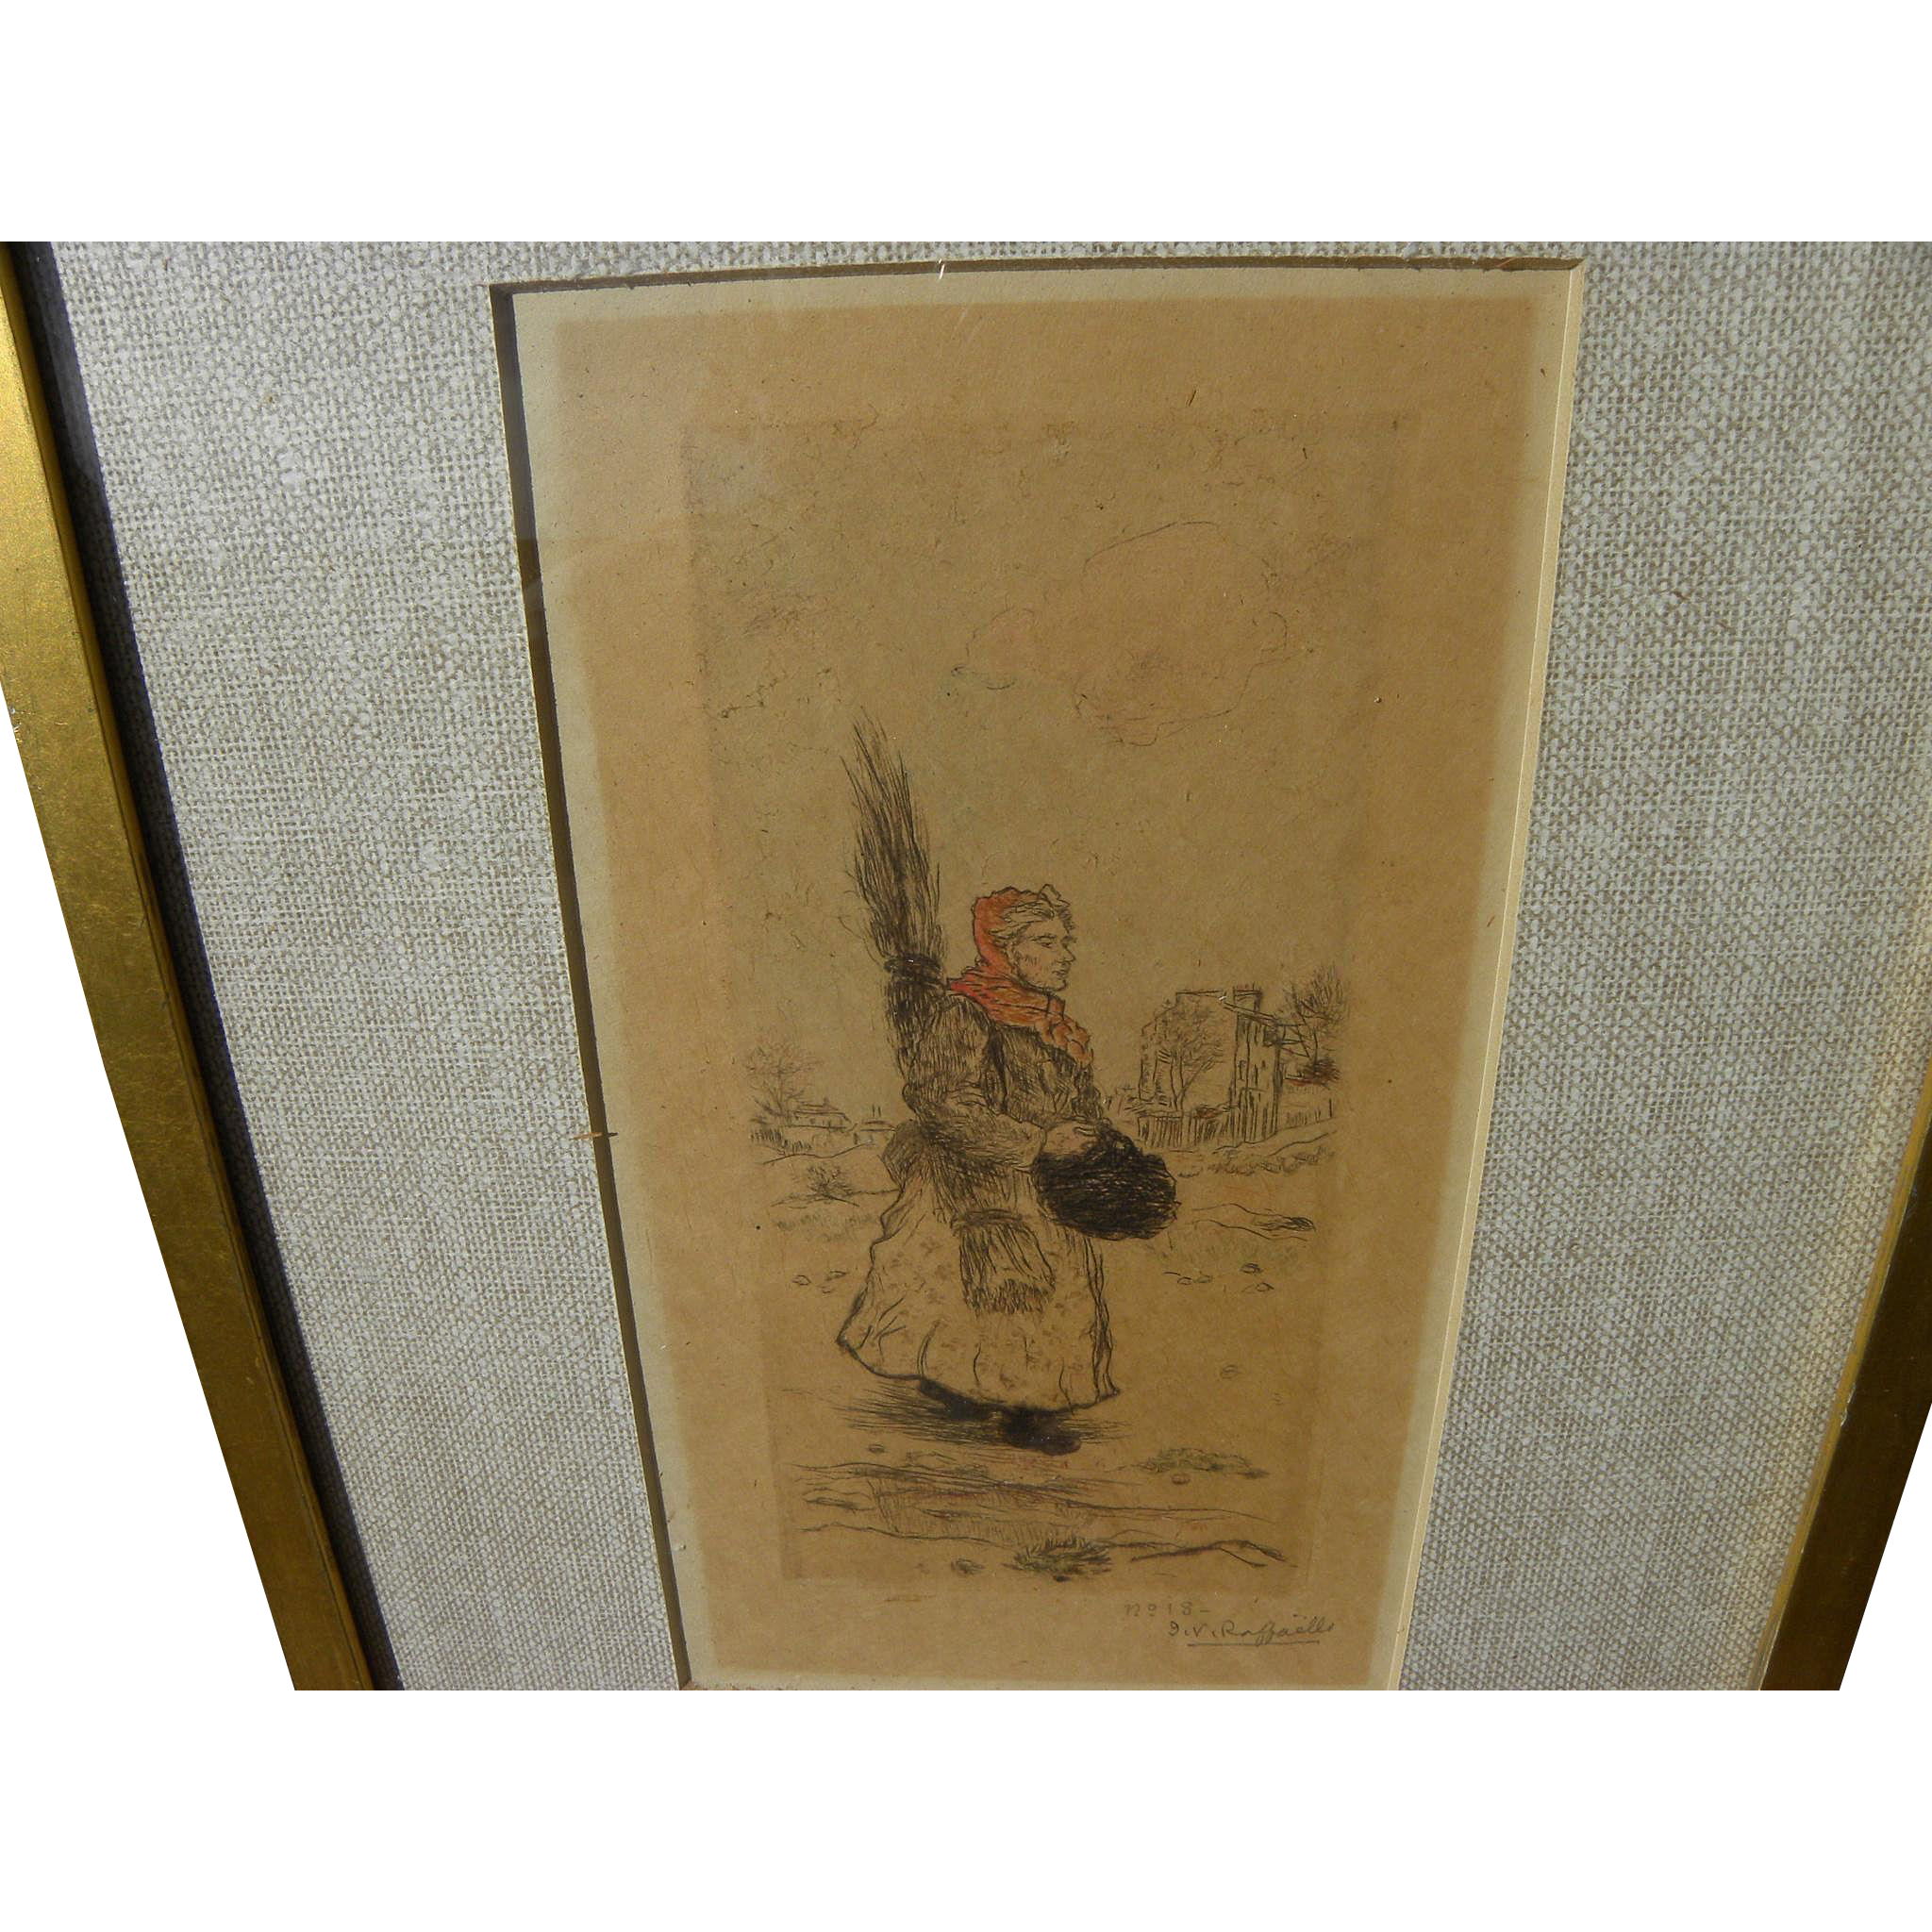 JEAN FRANCOIS RAFFAELLI (1850-1924) pencil signed color etching by important French realist painter